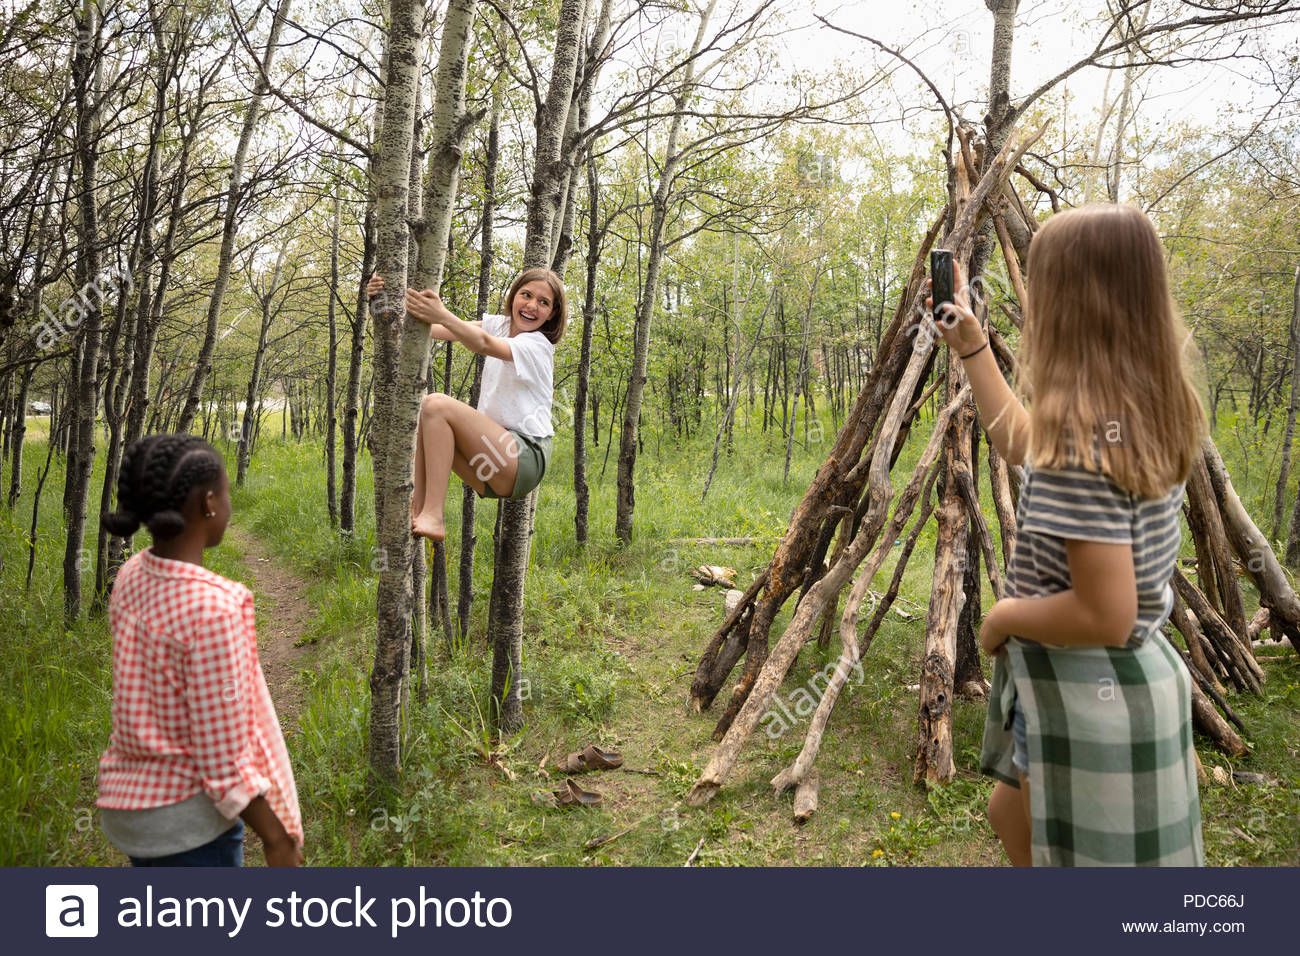 Tween girl friends with camera phone climbing tree, playing in woods - Stock Image